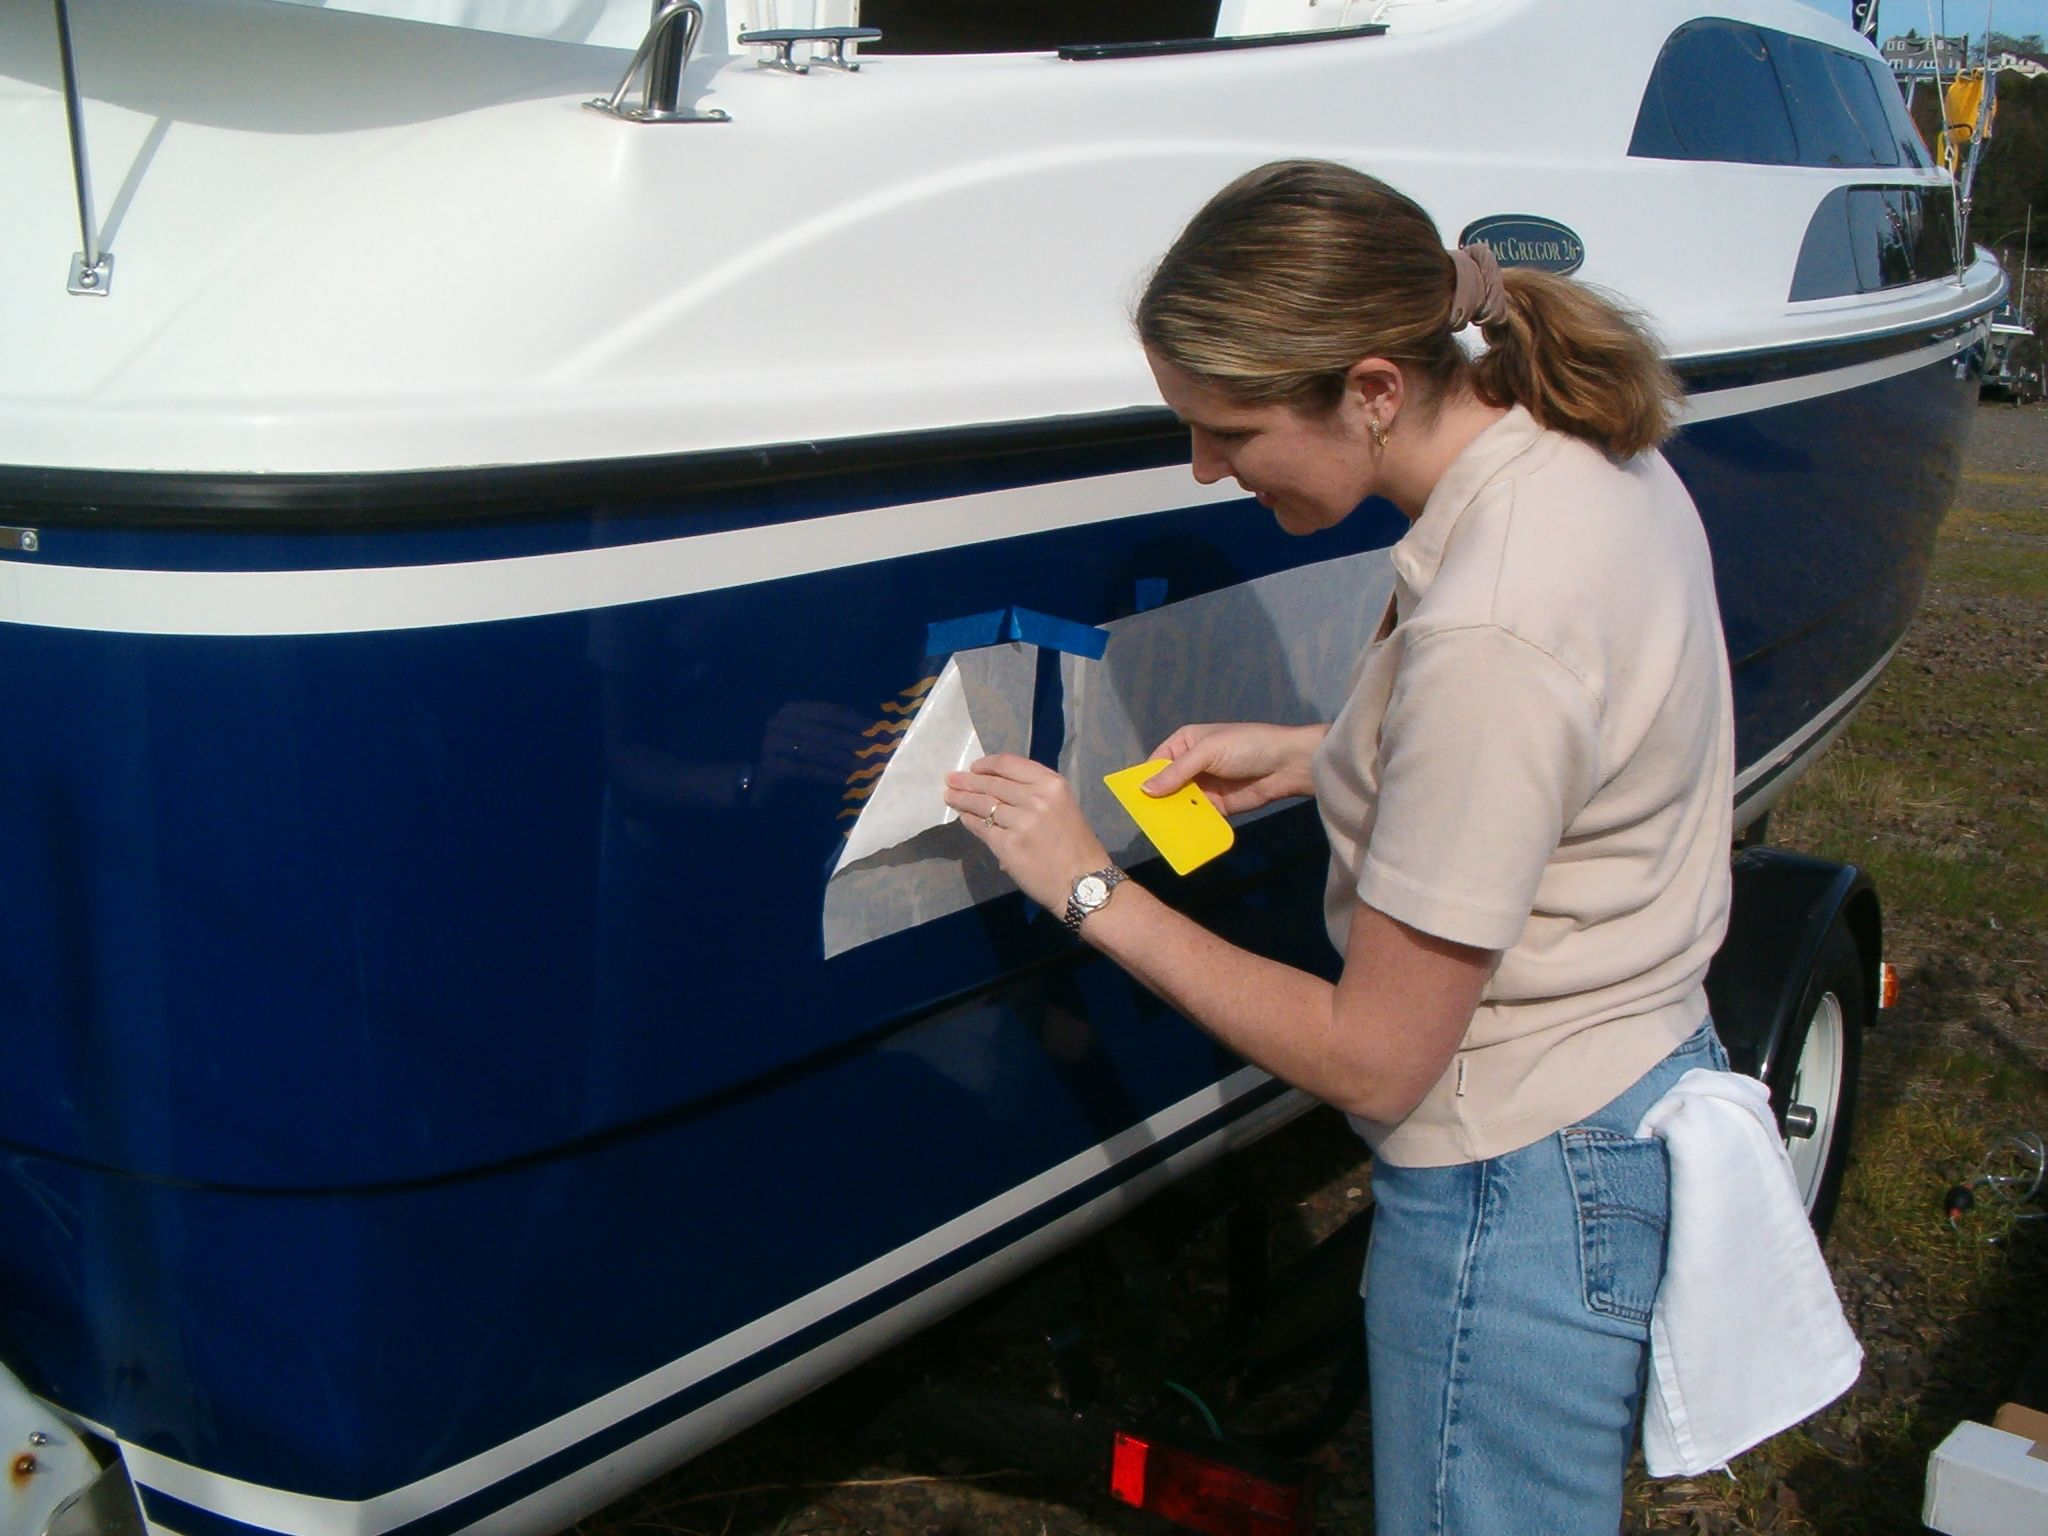 How To Remove Boat Decals Boatlife In 2020 Boat Decals Boat Name Decals Boat